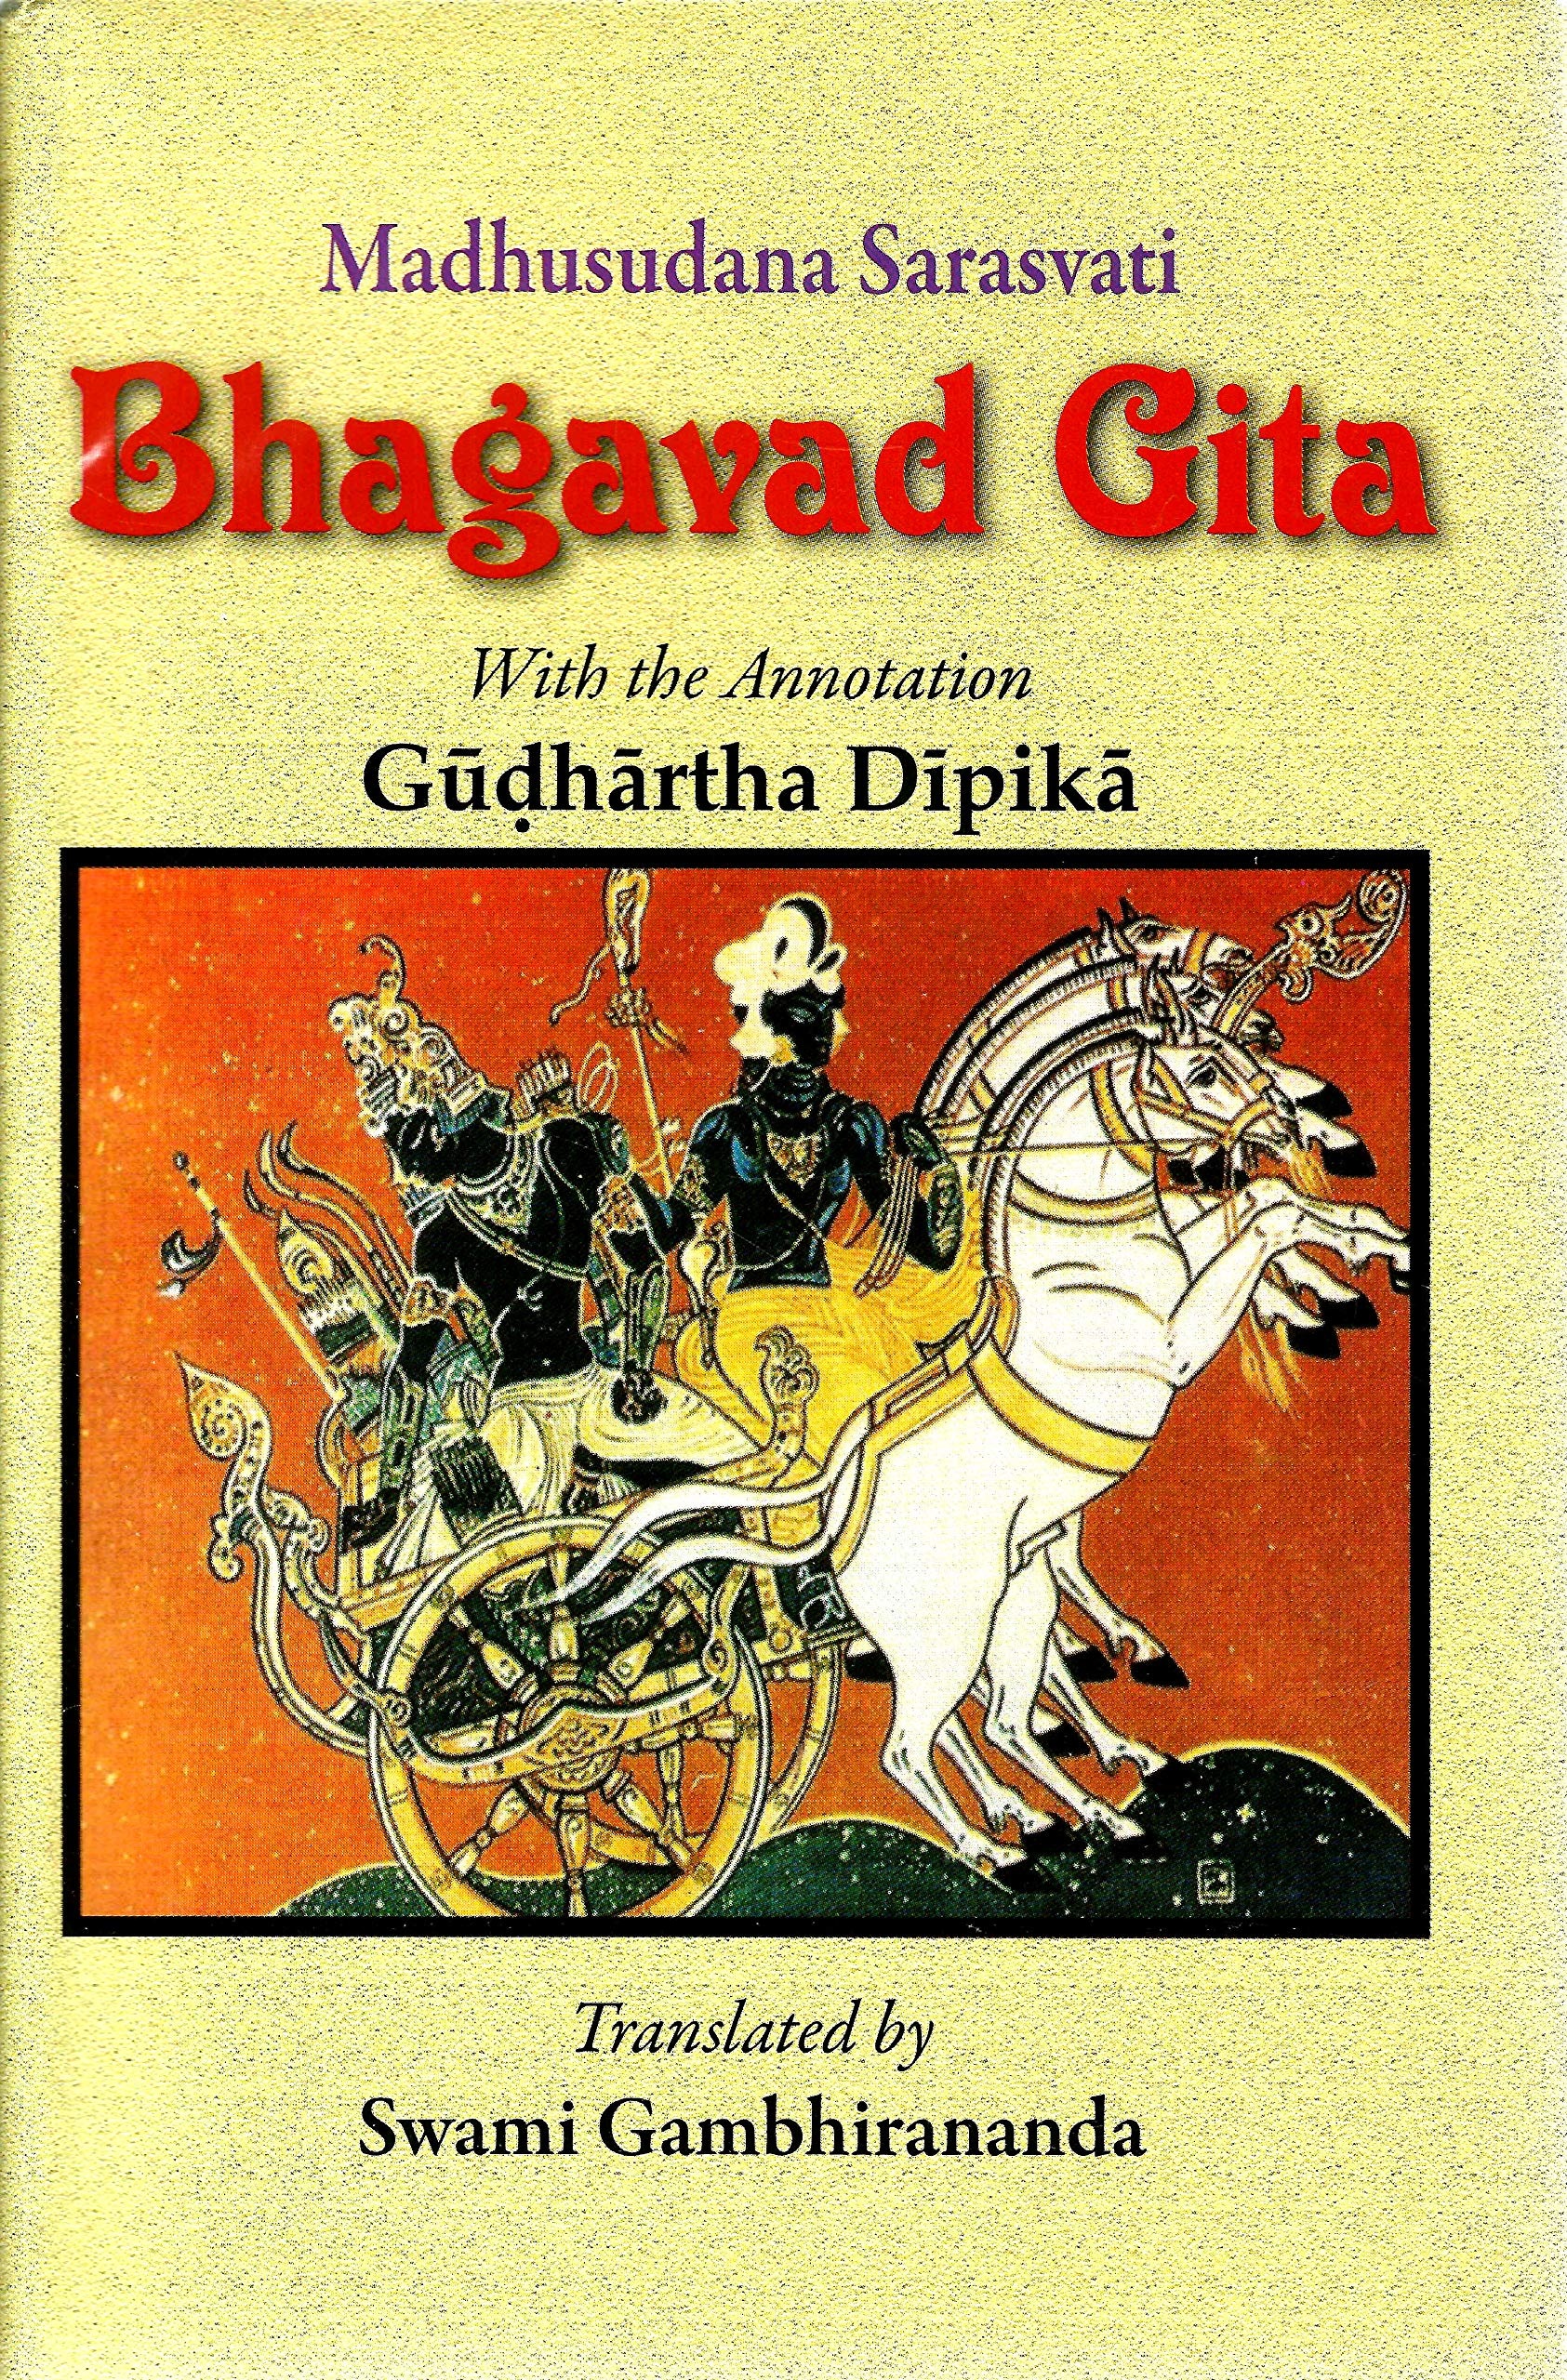 MADHUSUDAN SARASWATI GITA PDF DOWNLOAD